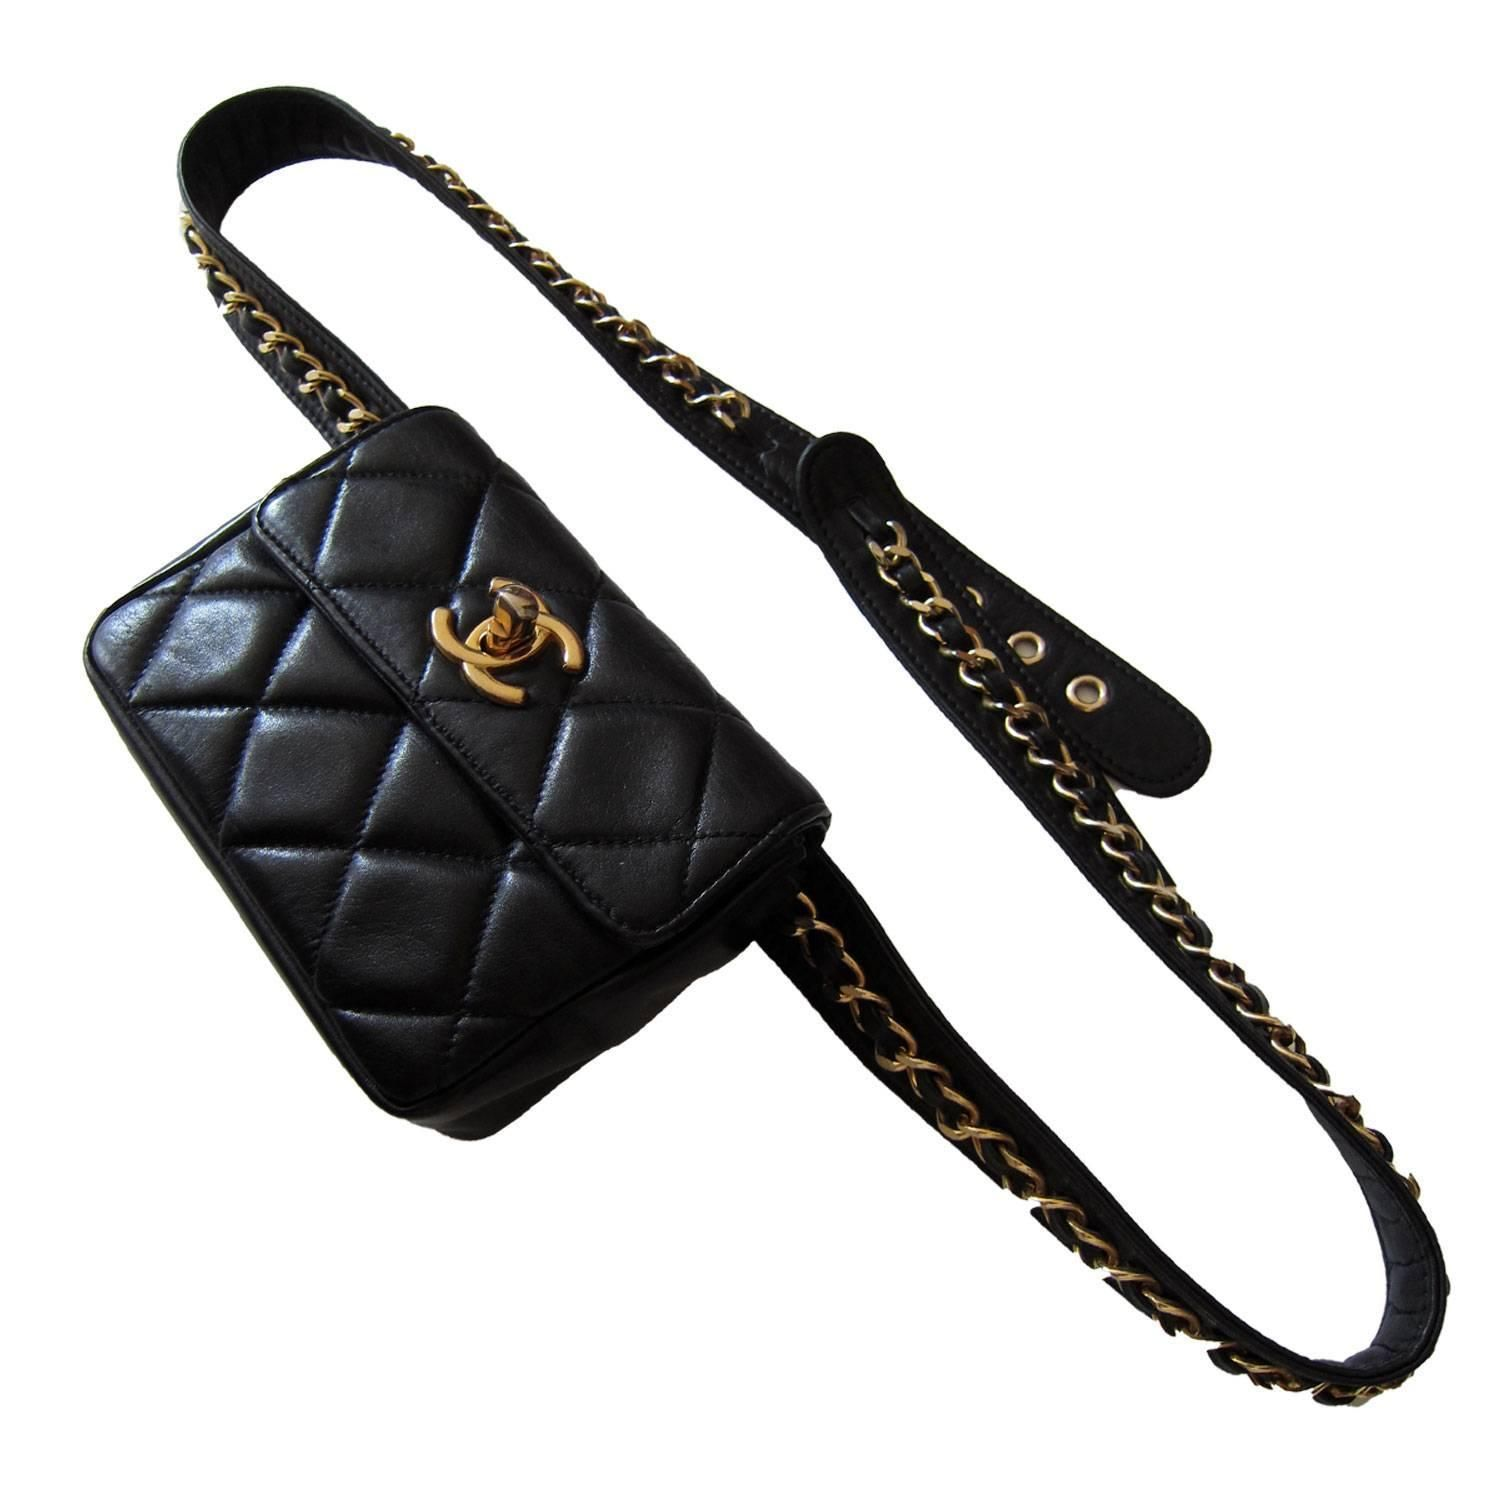 28dd0e3347c9 Leather Bum Bags, Leather Fanny Pack, Leather Chain, Black Leather, Leather  Handbags